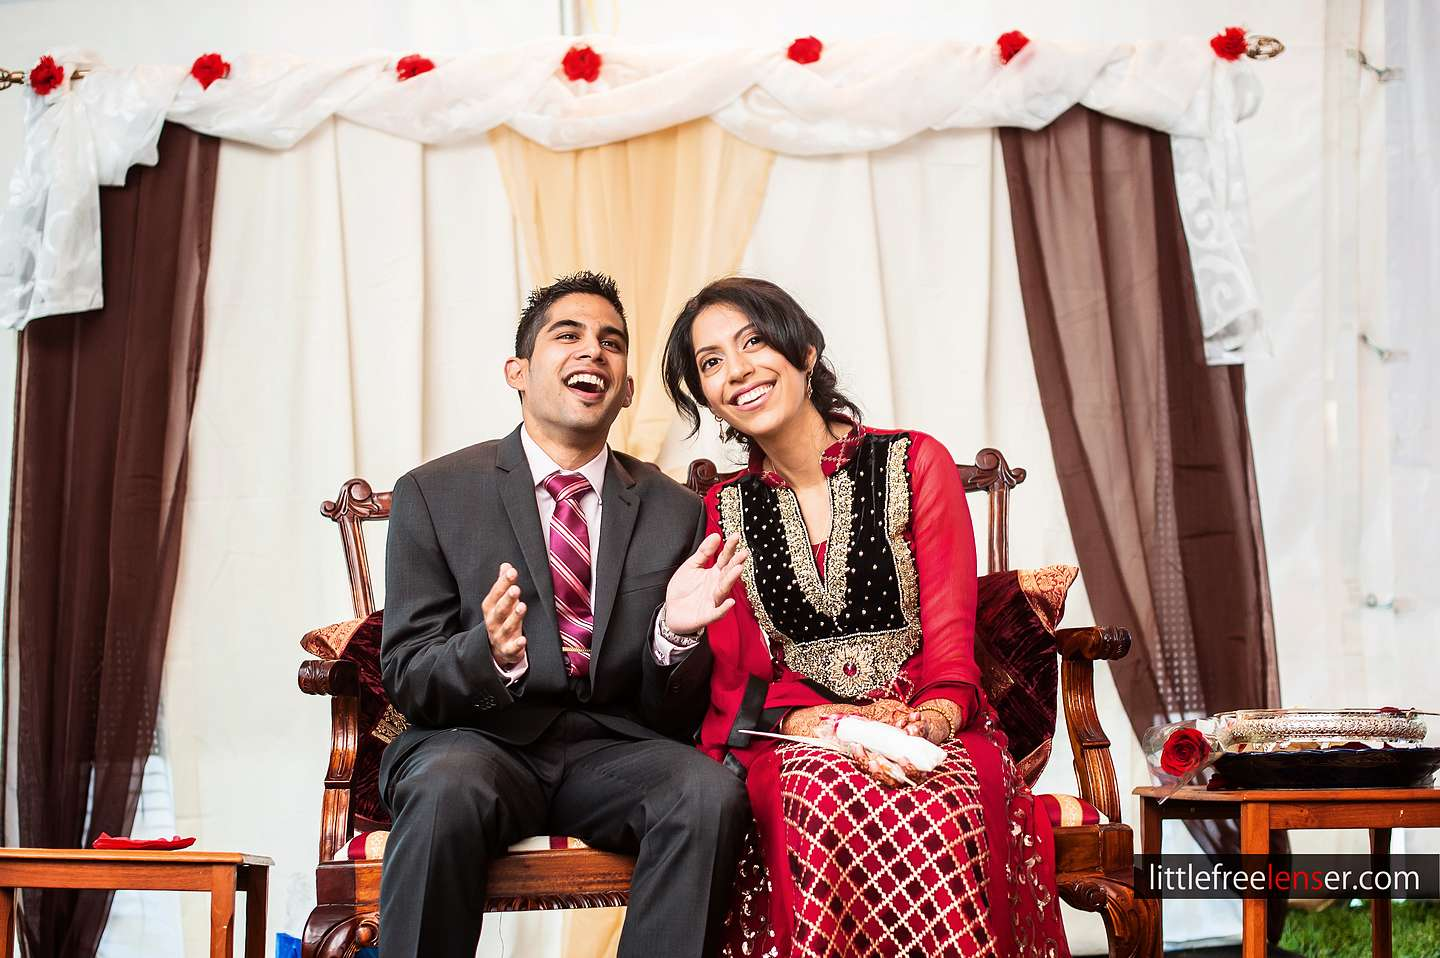 tn_alisha&ayaz_engagementparty_08